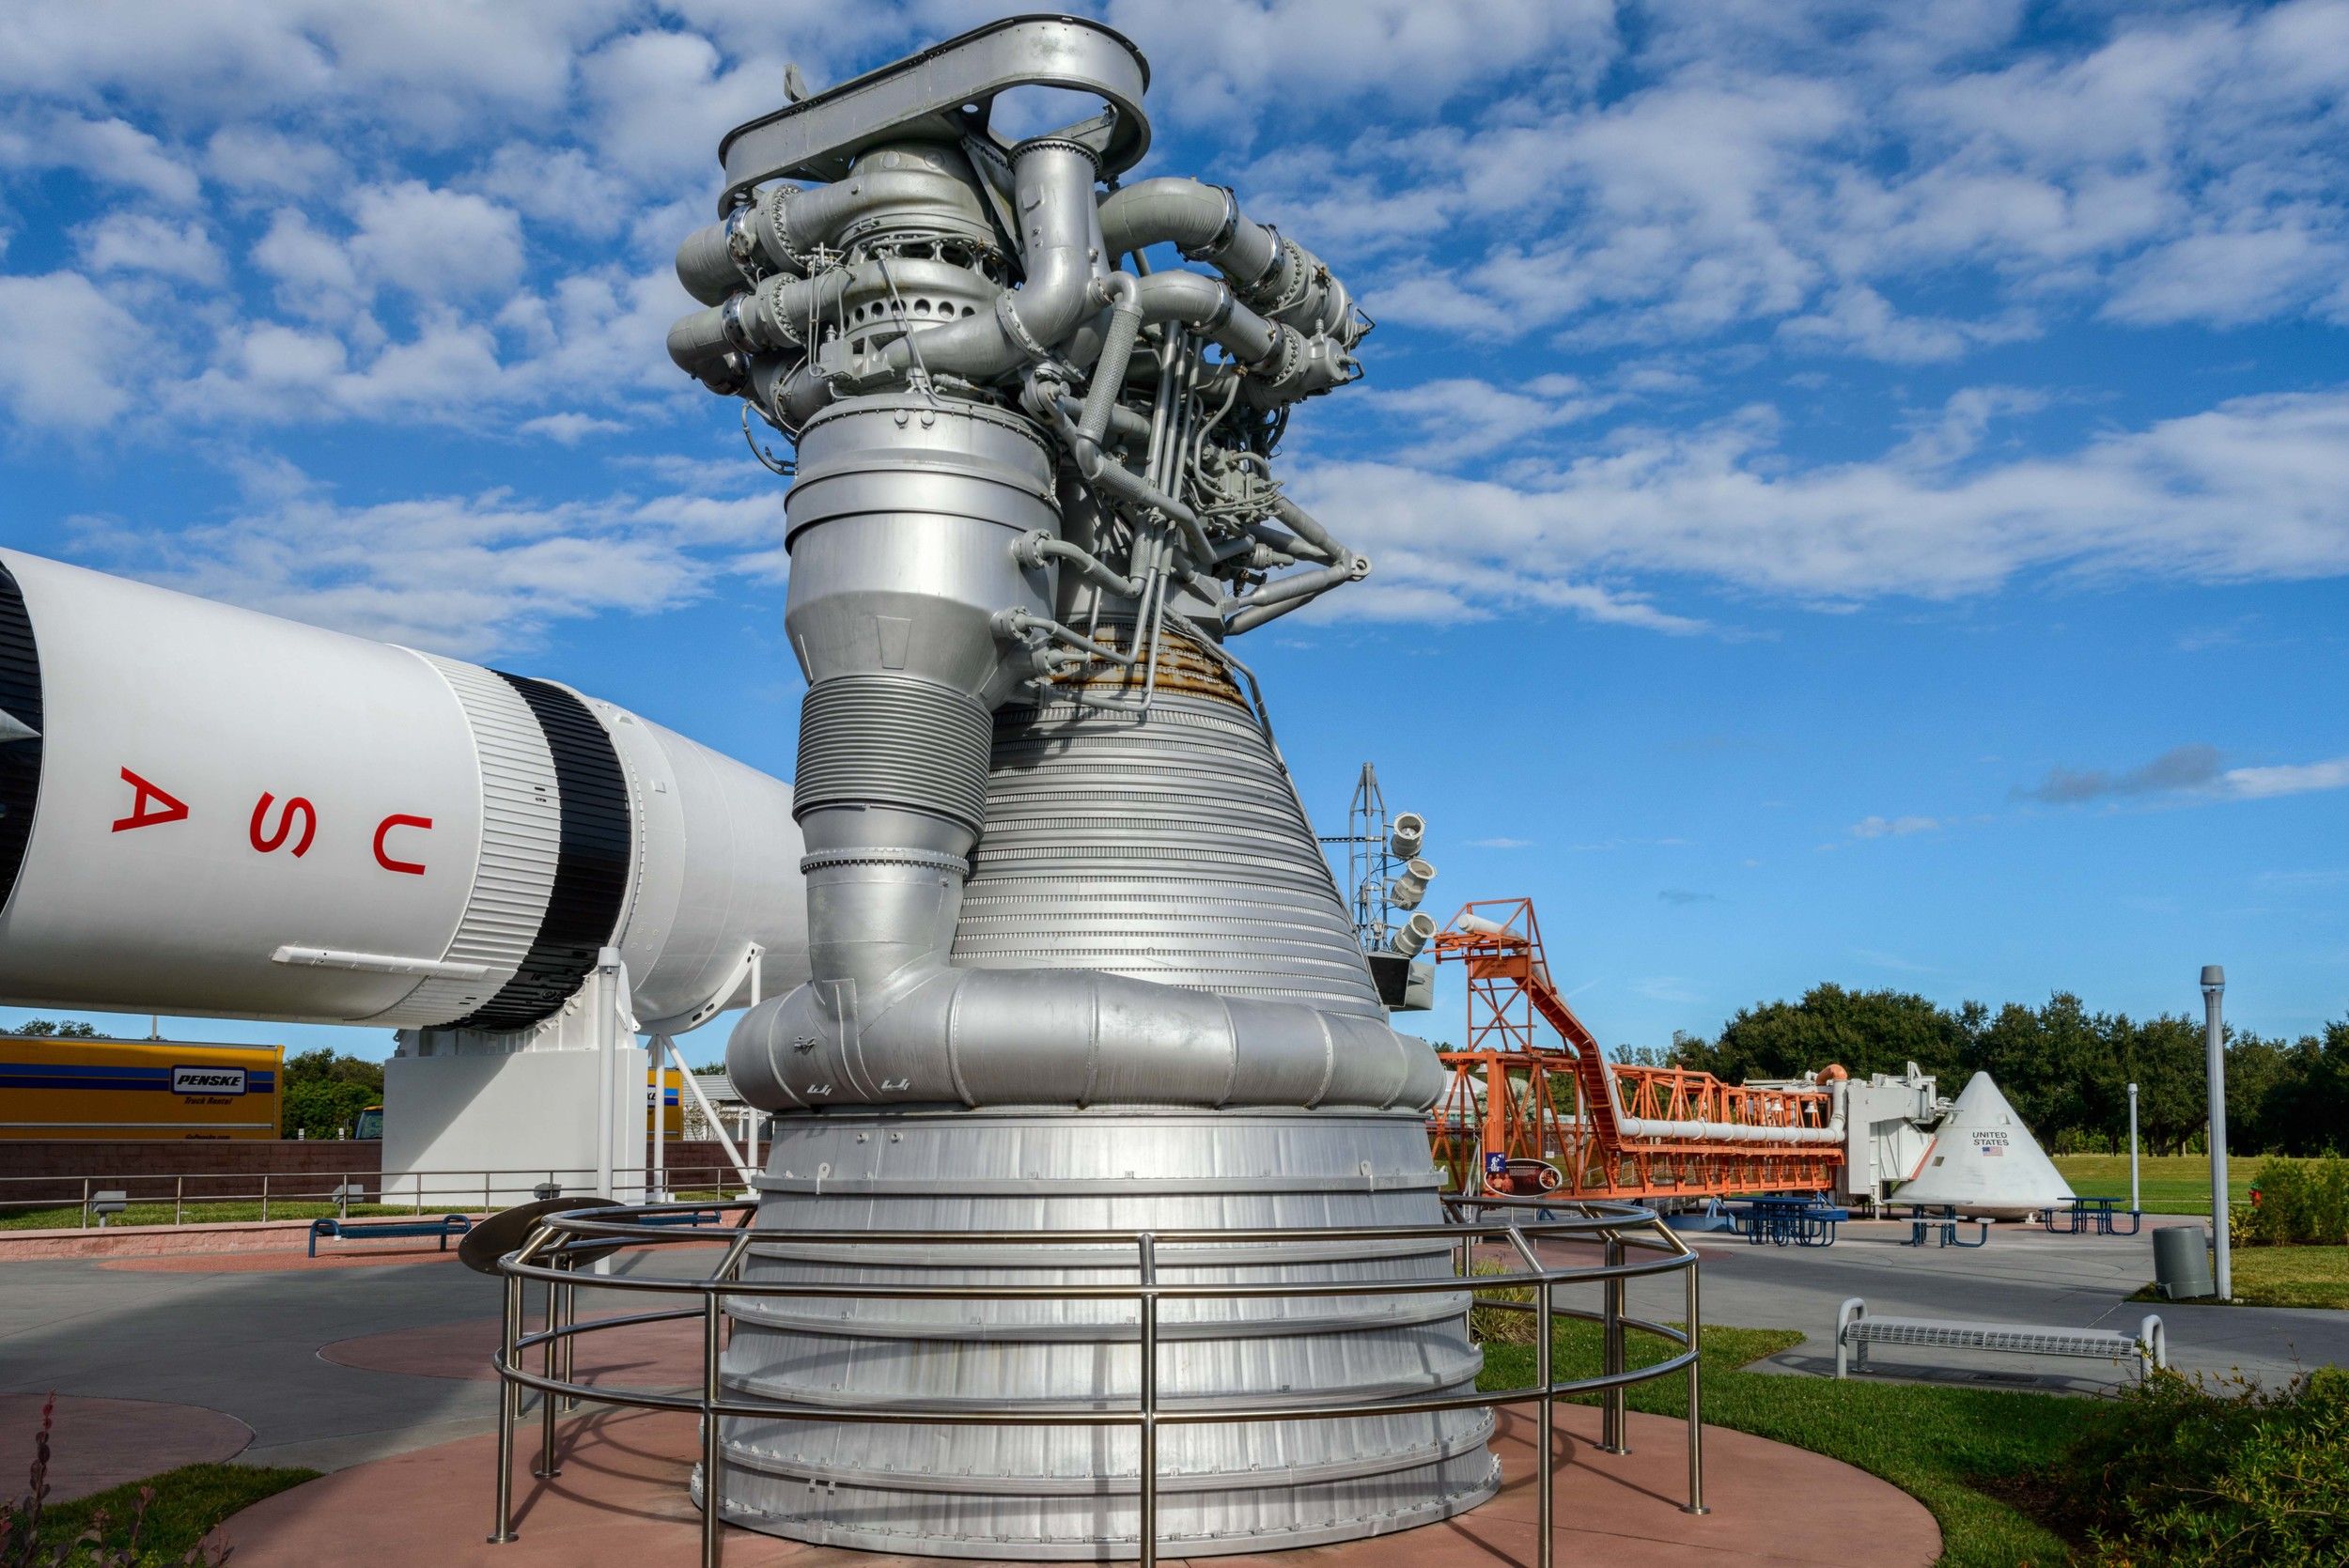 Kennedy Space Center Rocket Garden Gallery Uwe Duerr Saturn V F1 Engine Diagram The Most Powerful Liquid Fueled Ever Produced